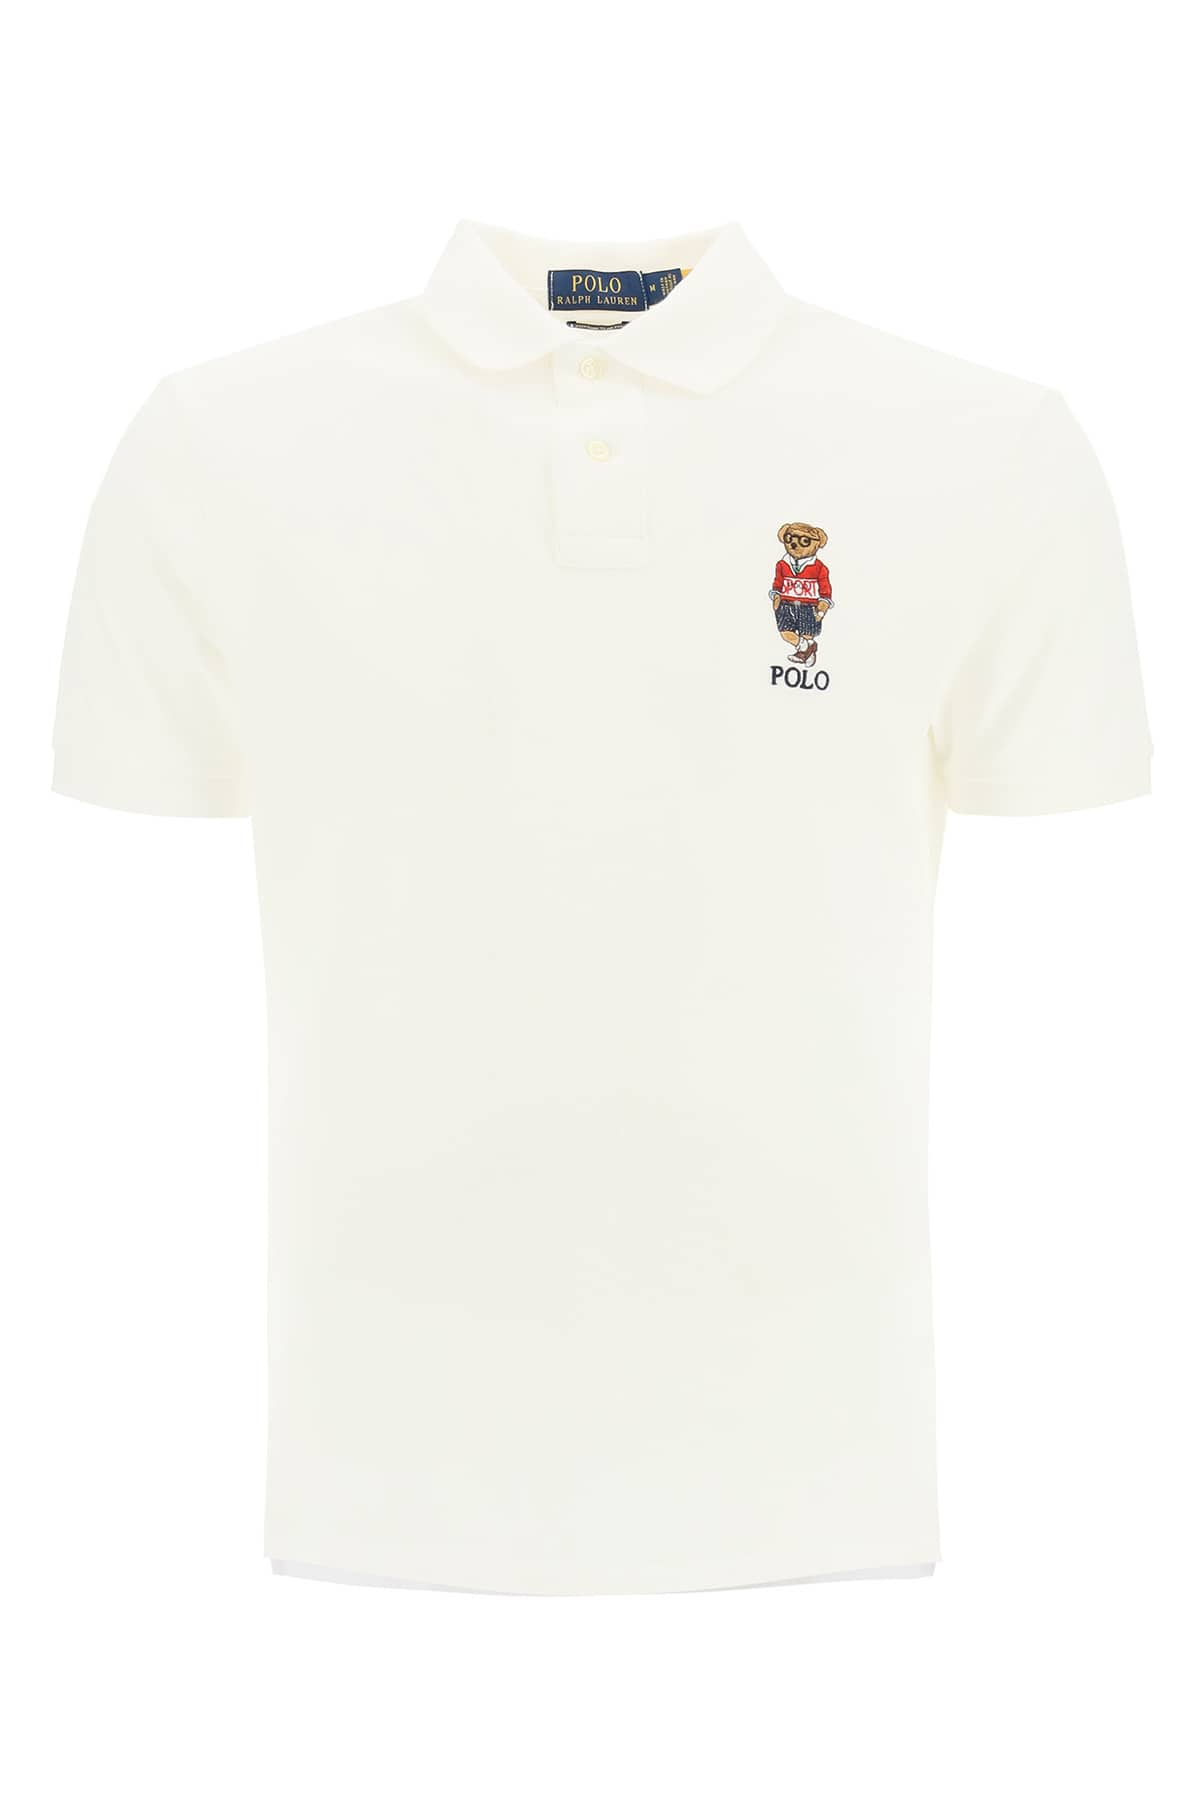 POLO RALPH LAUREN SLIM FIT POLO SHIRT WITH BEAR S White Cotton